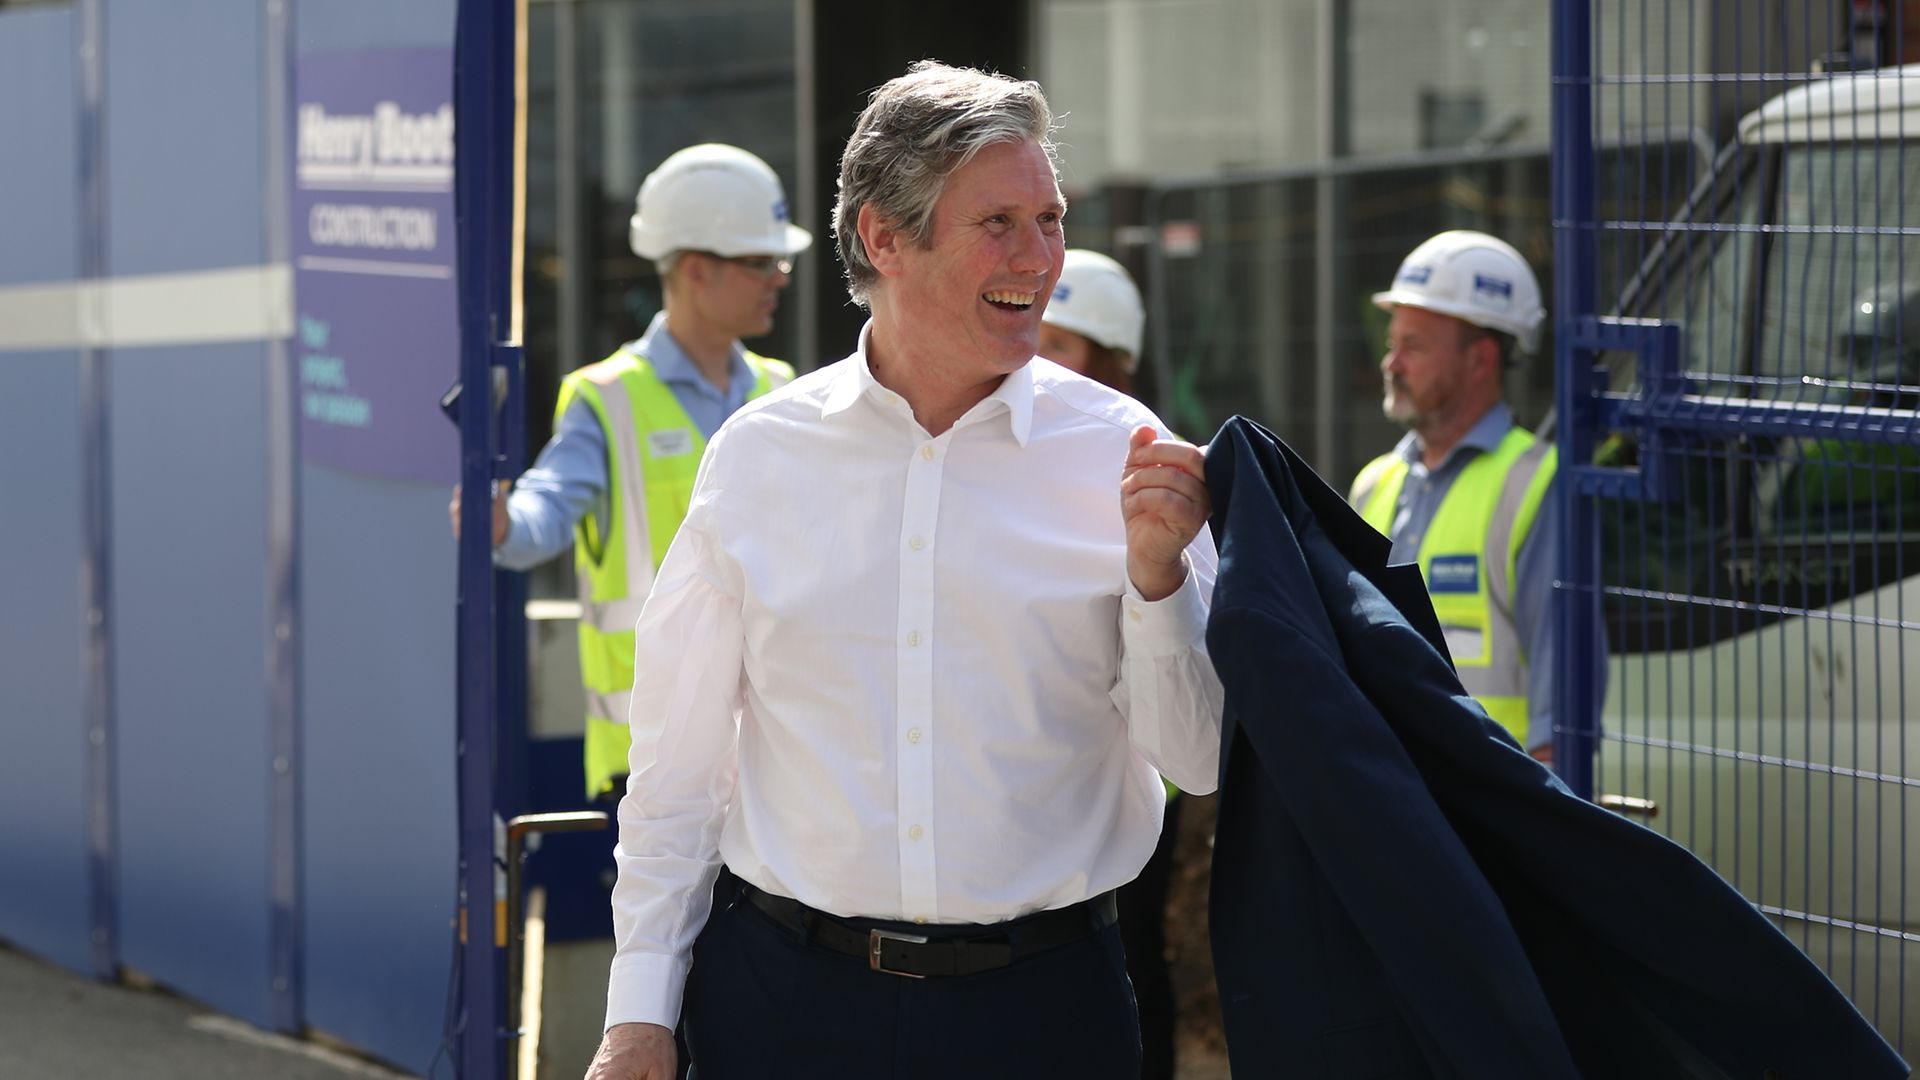 Labour Party leader Sir Keir Starmer during a visit to Sheffield, South Yorkshire, ahead of May's local elections - Credit: PA